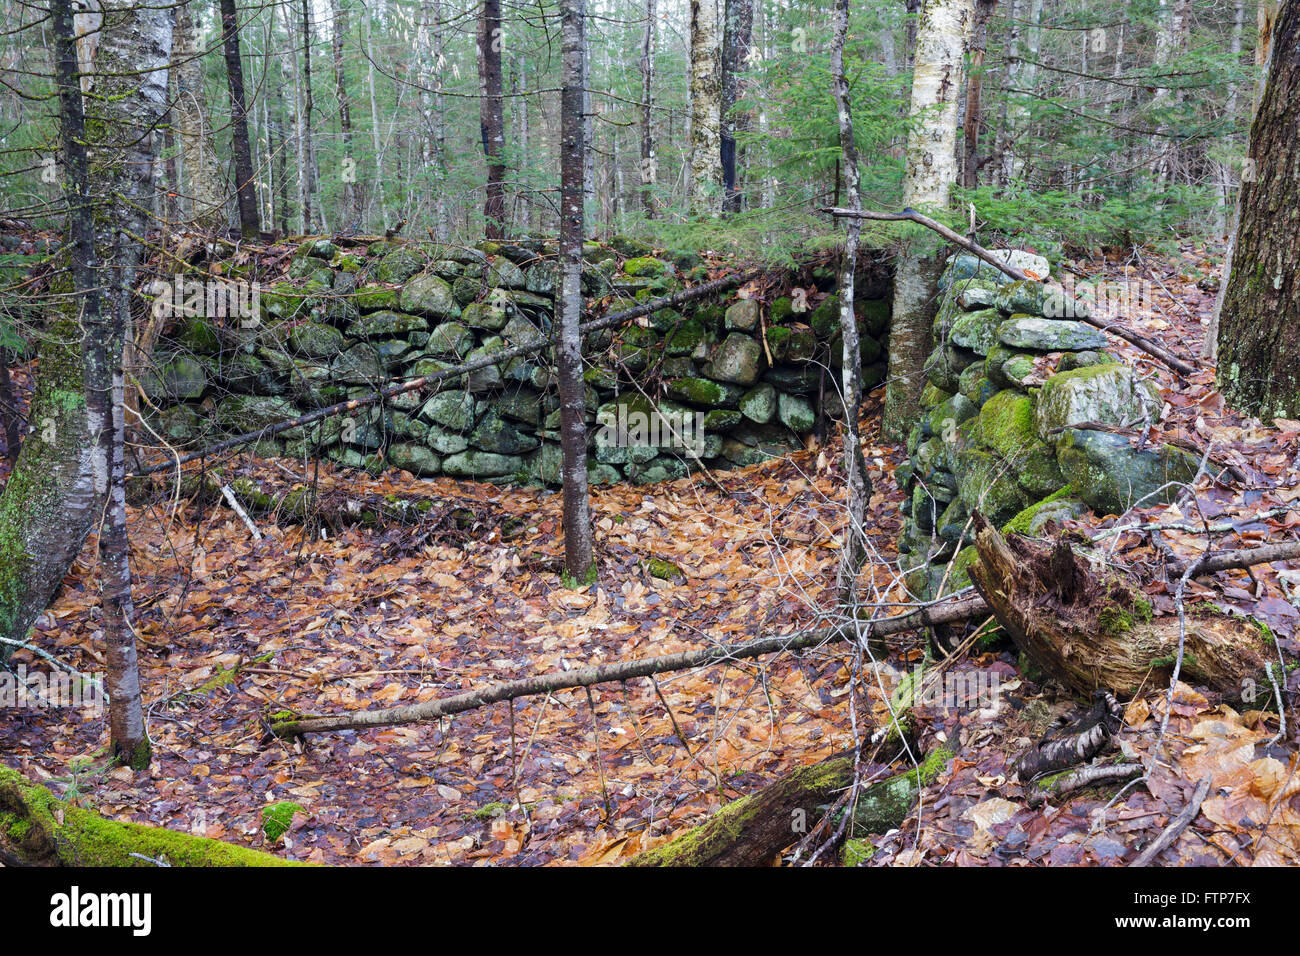 An abandoned cellar hole along an old road off Tunnel Brook Road in Benton, New Hampshire. - Stock Image